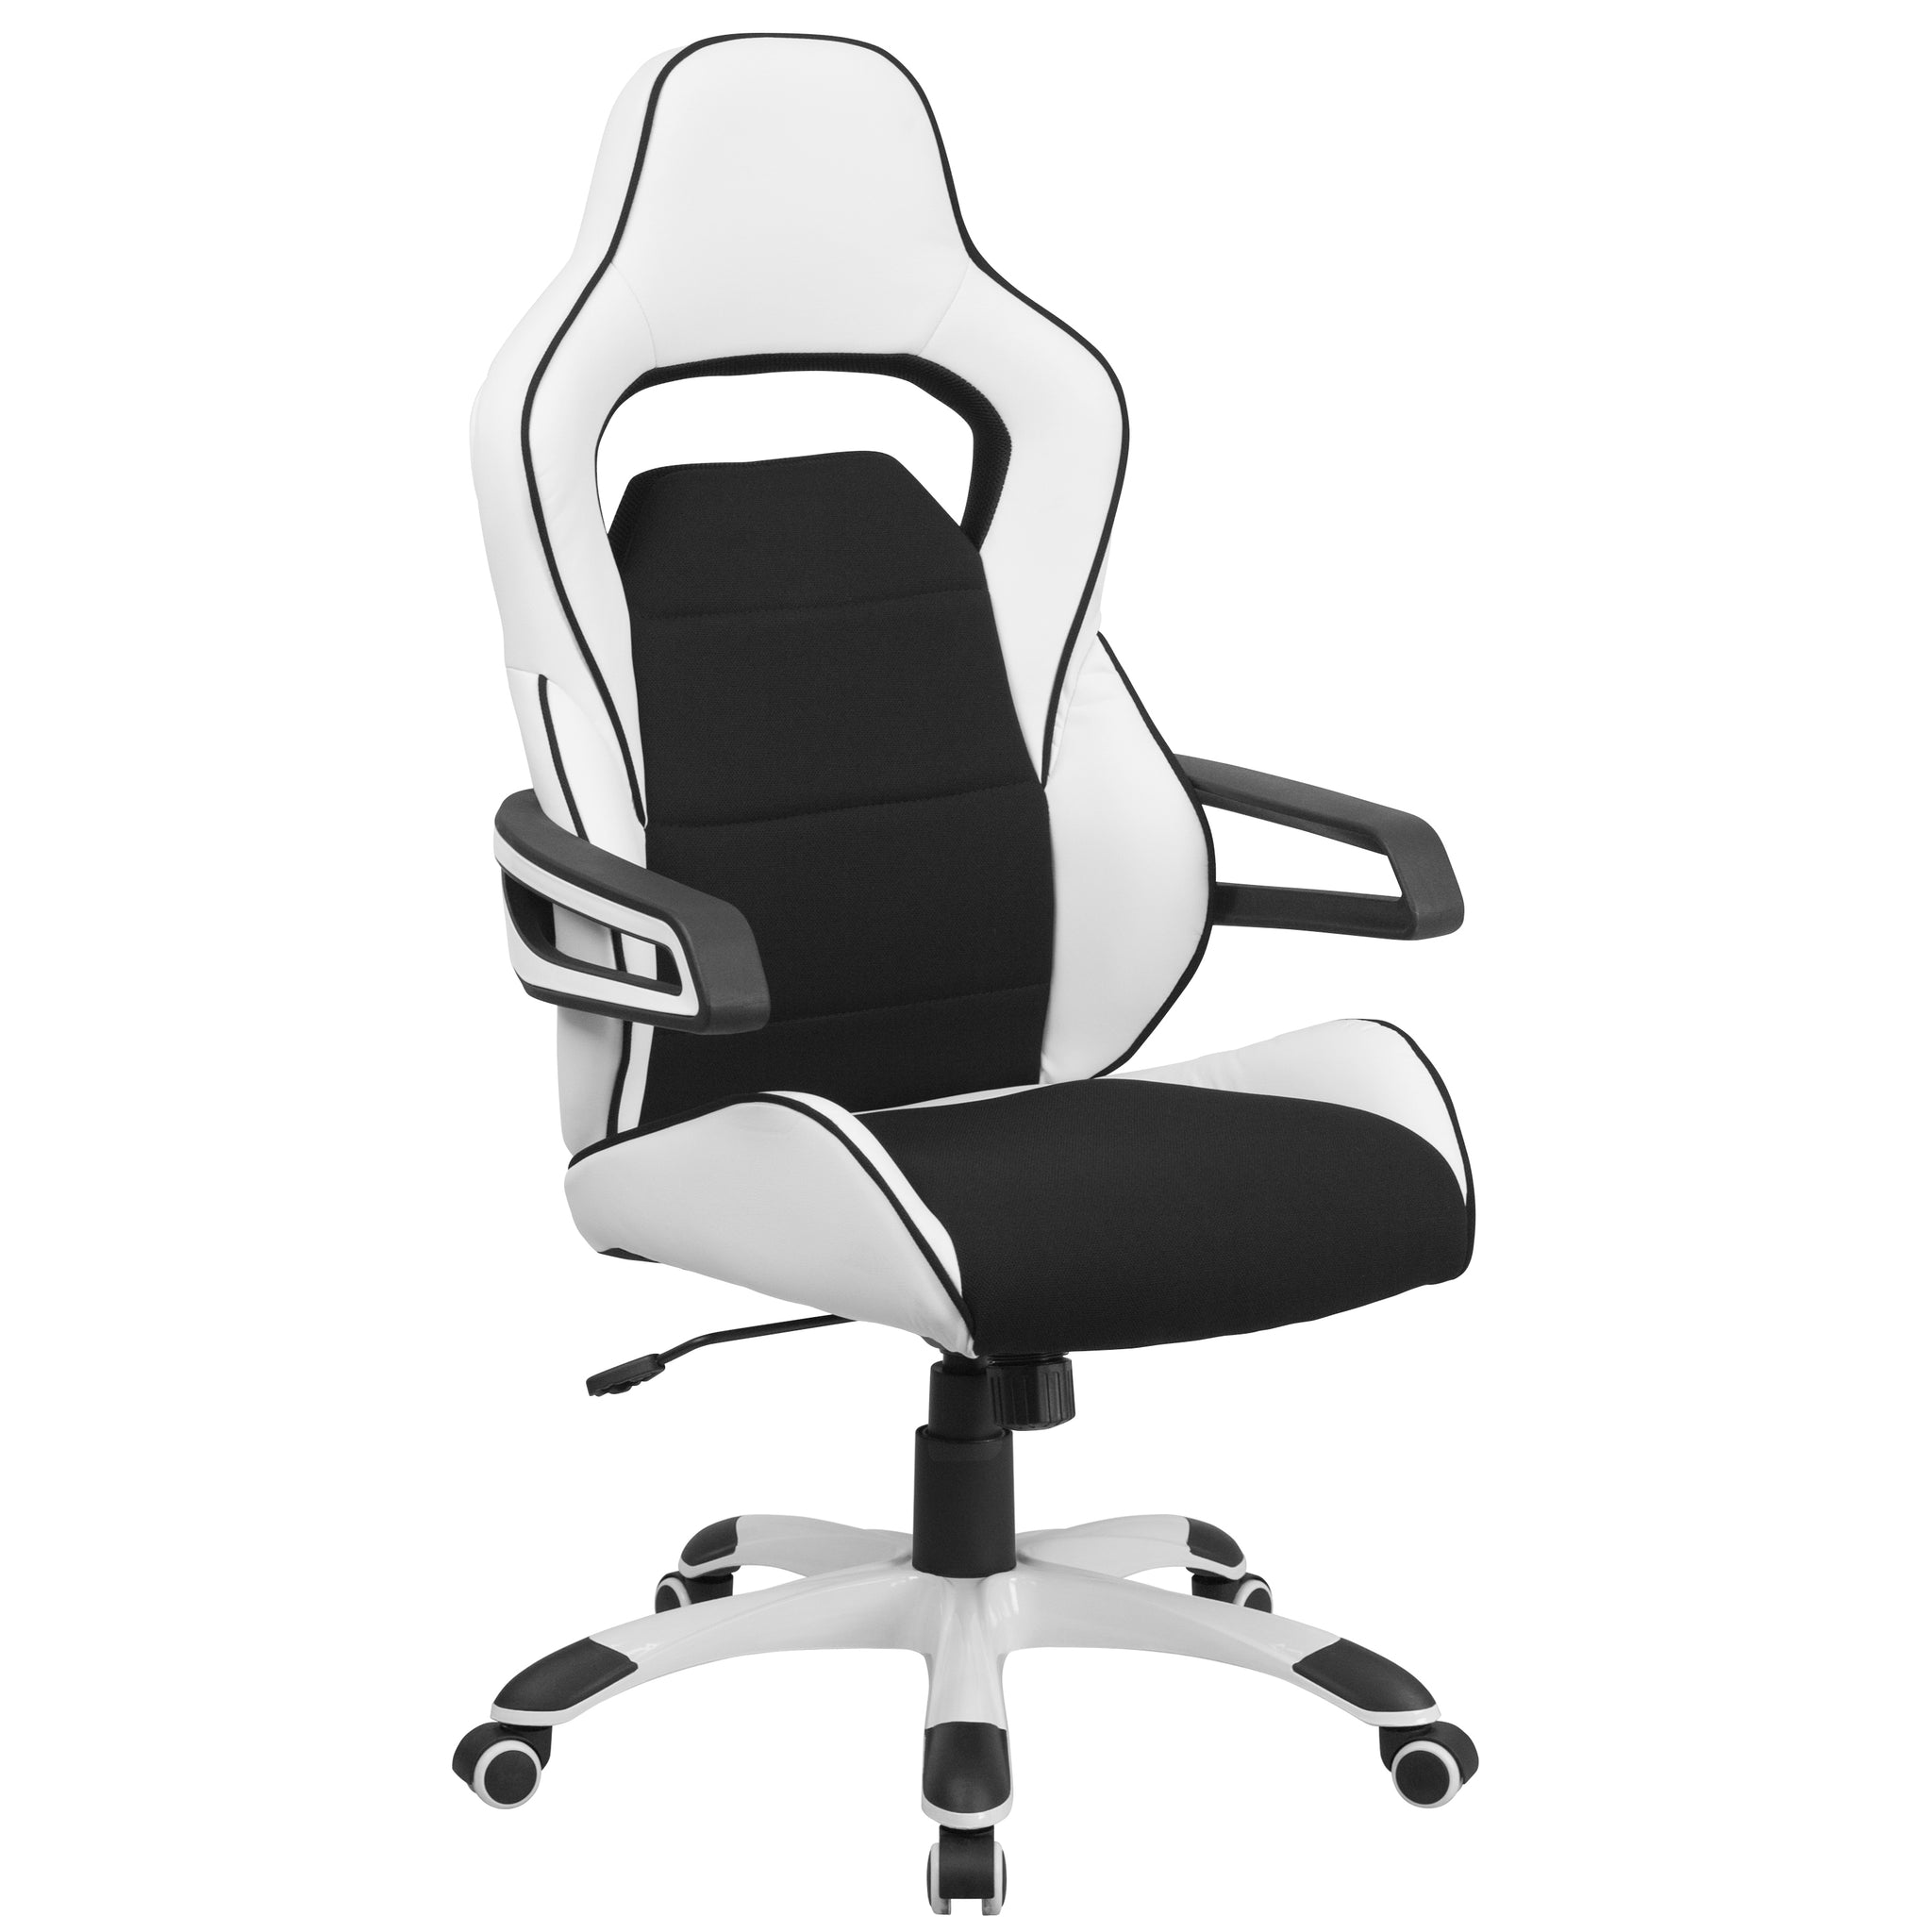 High Back Vinyl Executive Swivel Office Chair with Fabric Inserts: Black and White